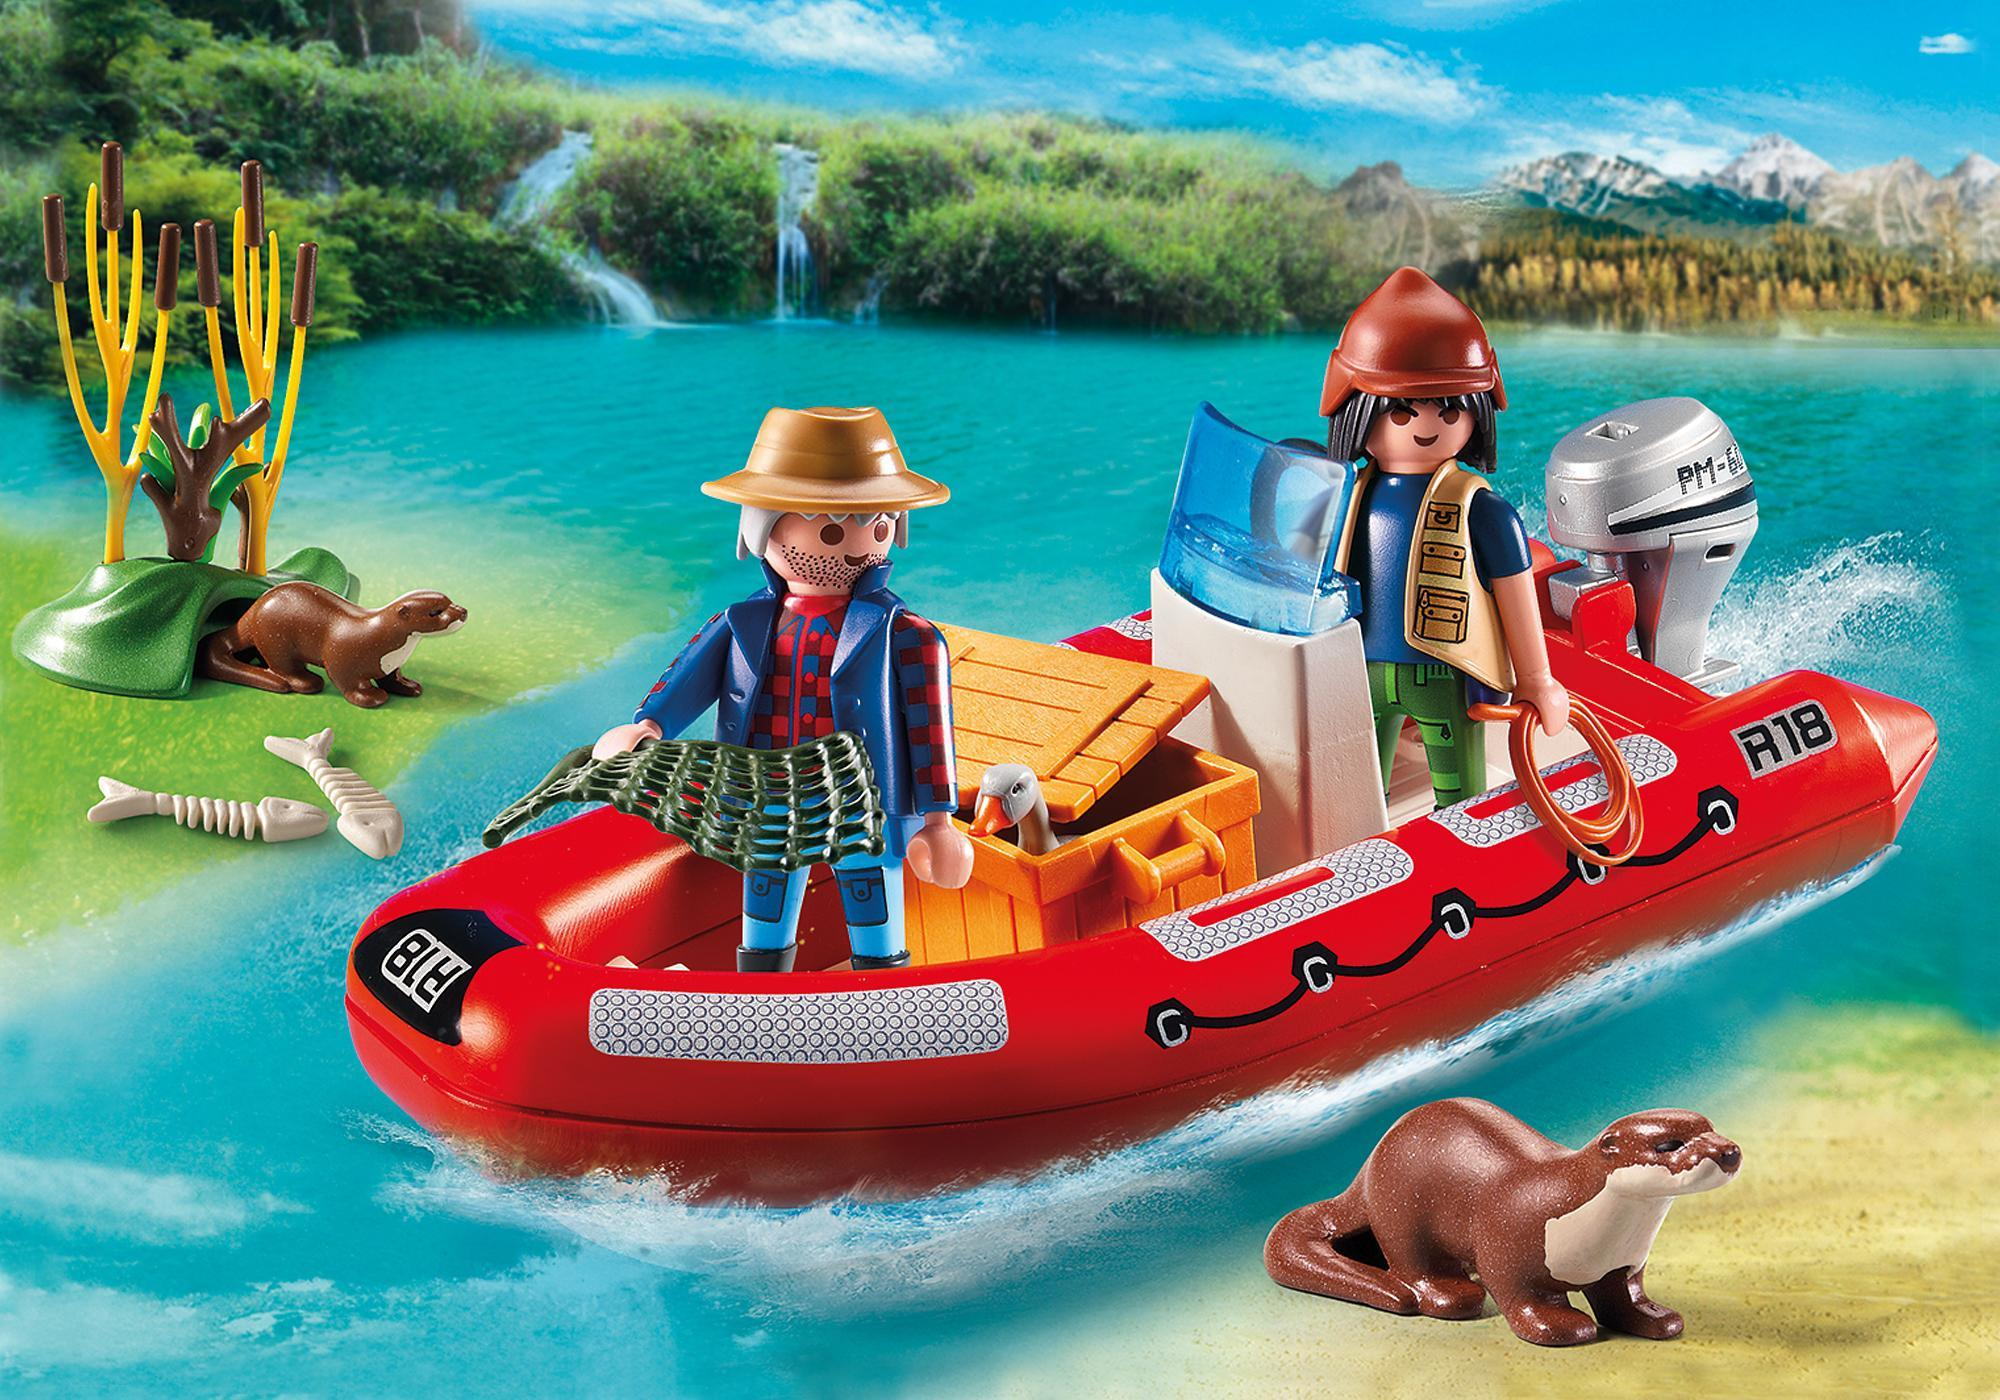 http://media.playmobil.com/i/playmobil/5559_product_detail/Inflatable Boat with Explorers